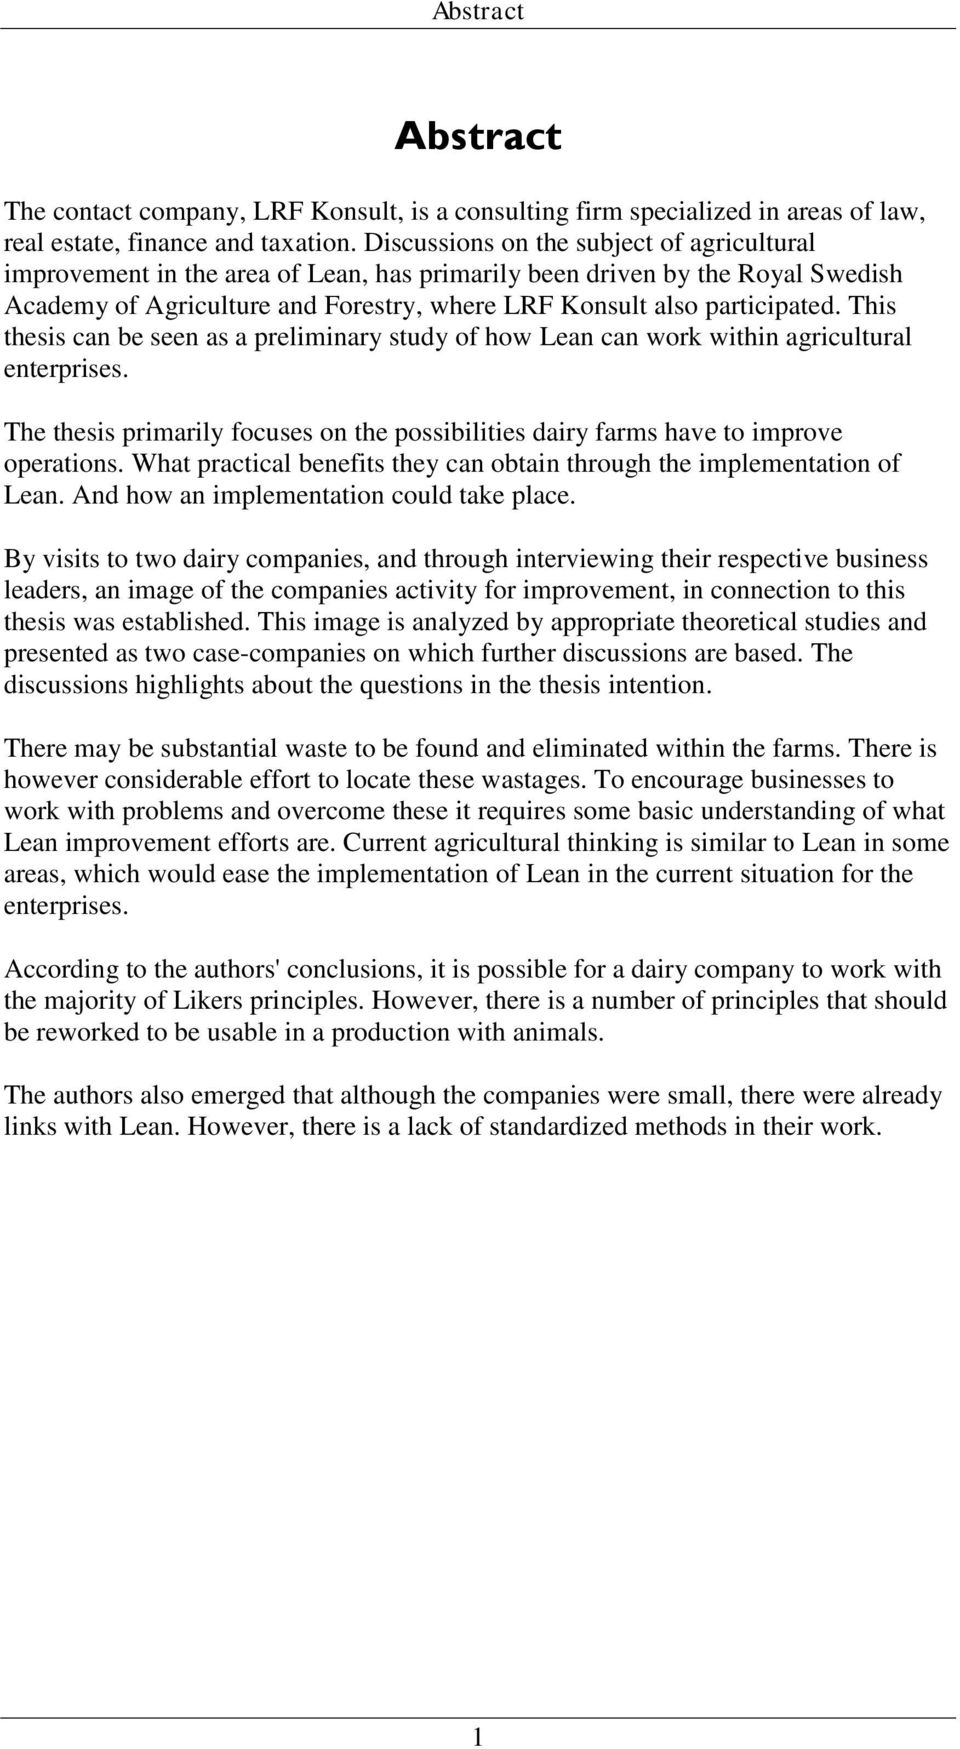 This thesis can be seen as a preliminary study of how Lean can work within agricultural enterprises. The thesis primarily focuses on the possibilities dairy farms have to improve operations.